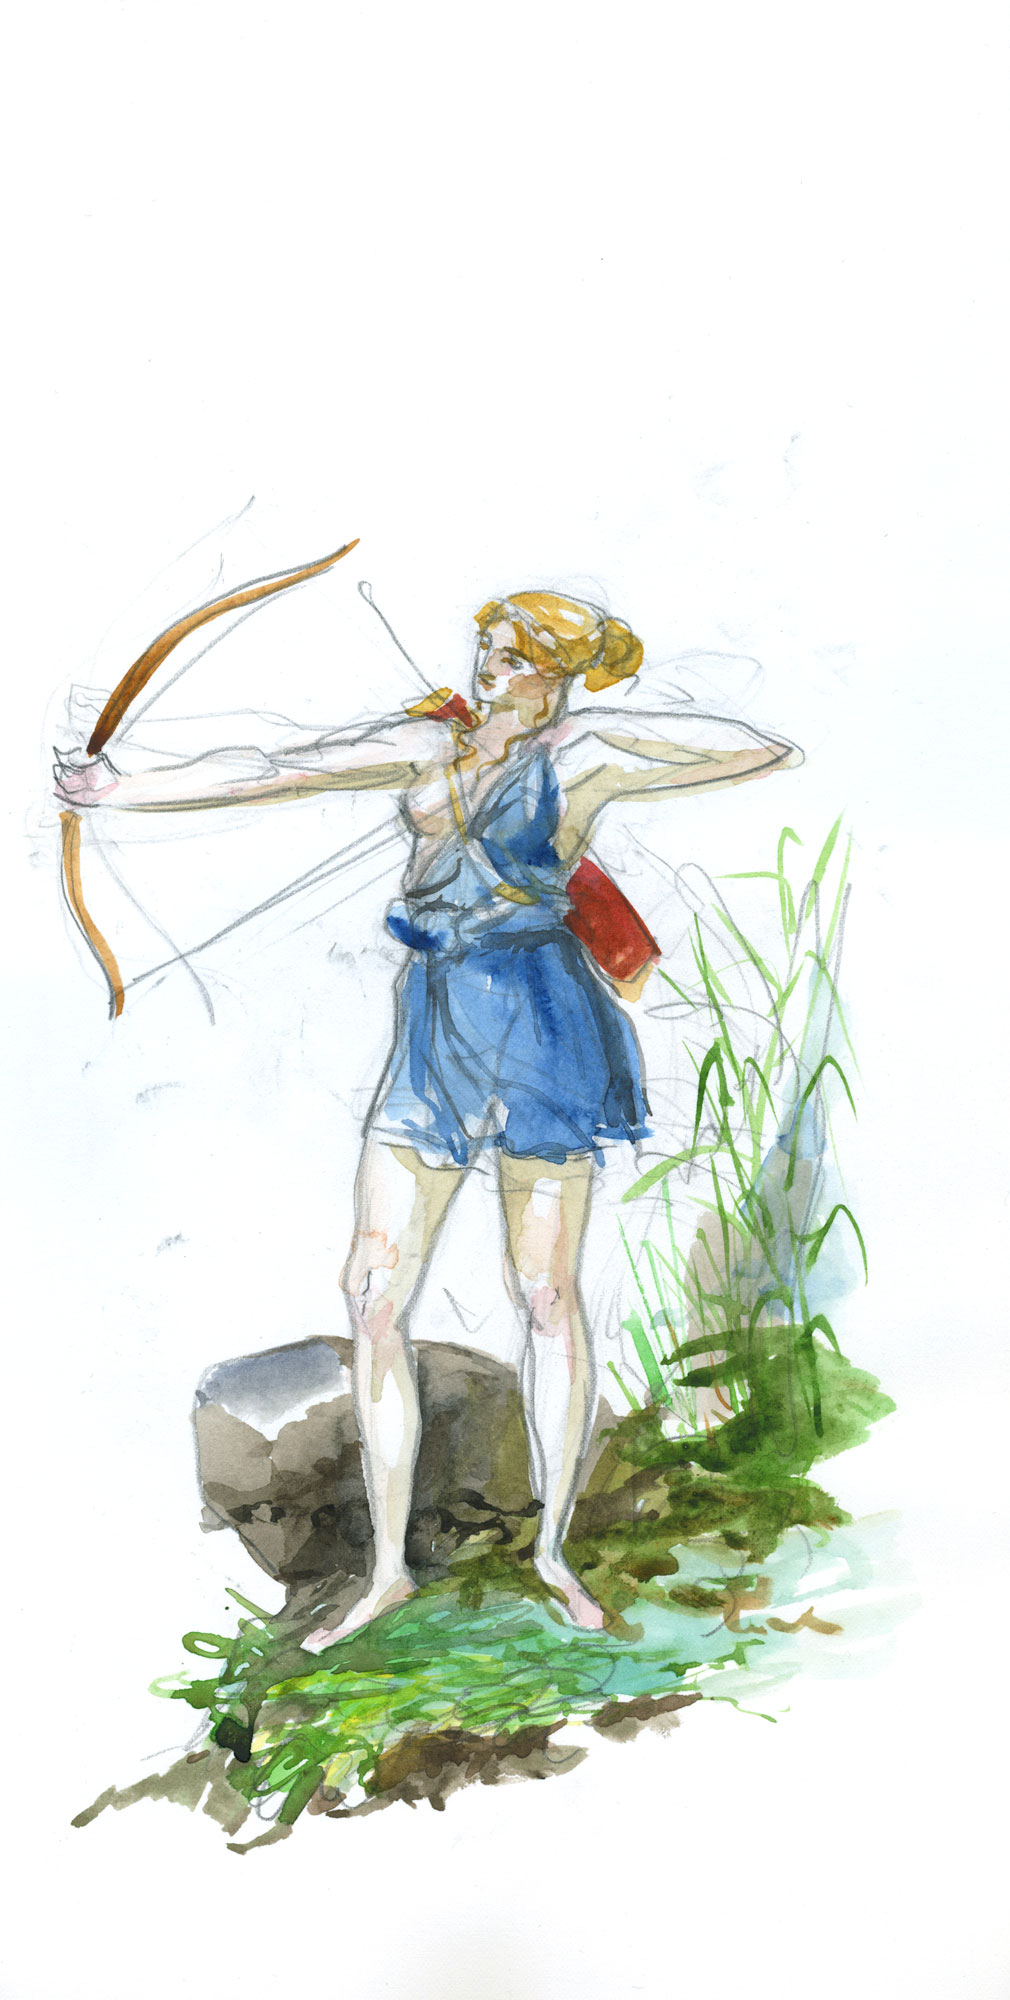 Artemis  2018, Watercolor and Pencil on Paper, 14 5/8 x 7 1/4 inches.  © Leonard Porter MMXVIII